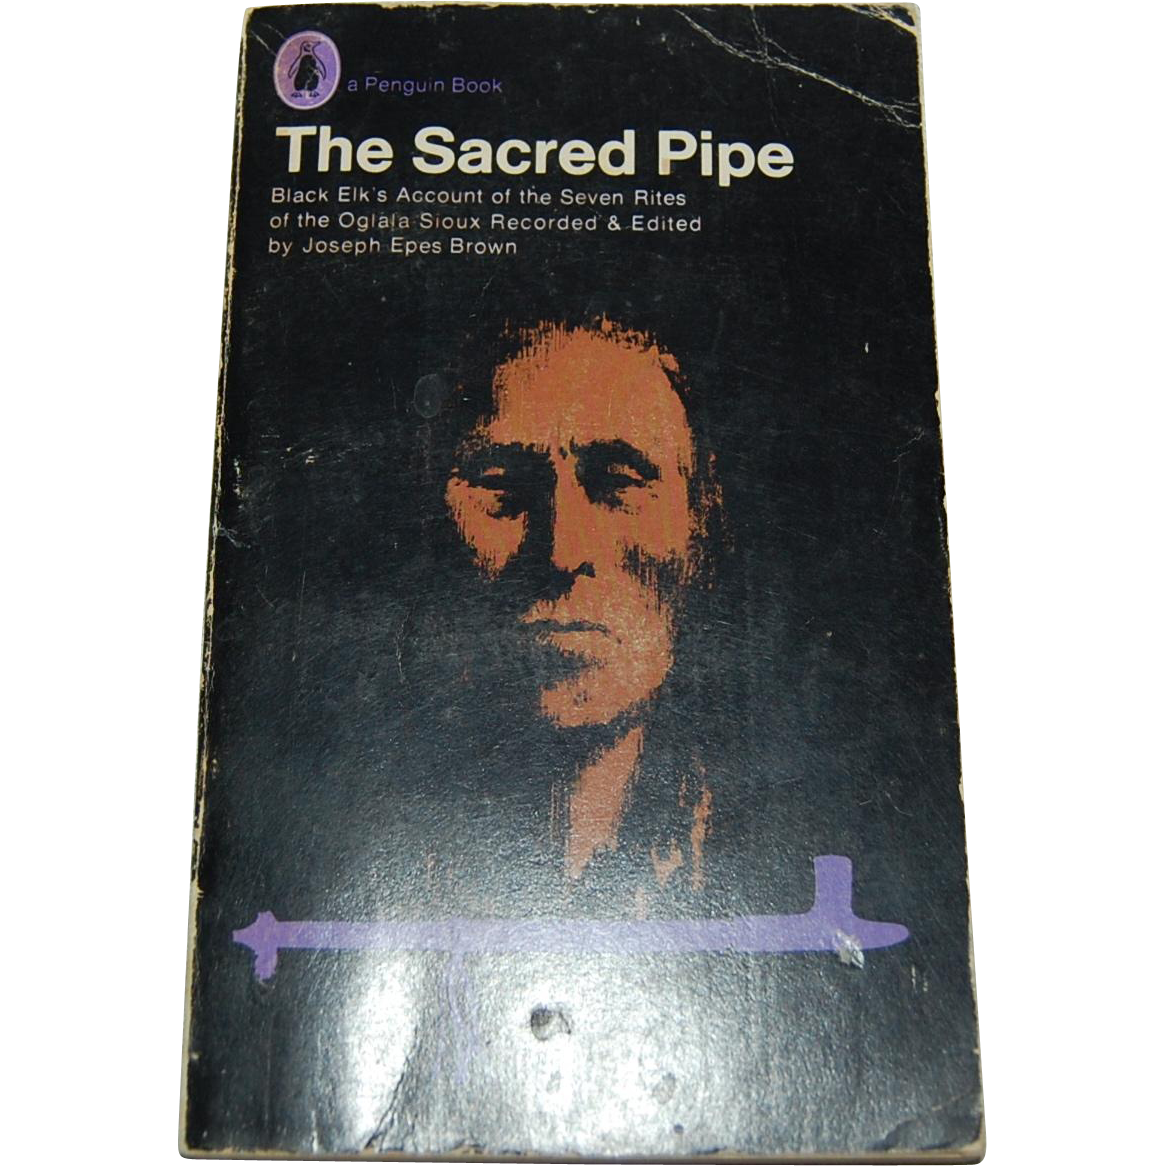 an essay on the sacred pipe by joseph epes brown London, an essay on the sacred pipe by joseph epes brown 1608.